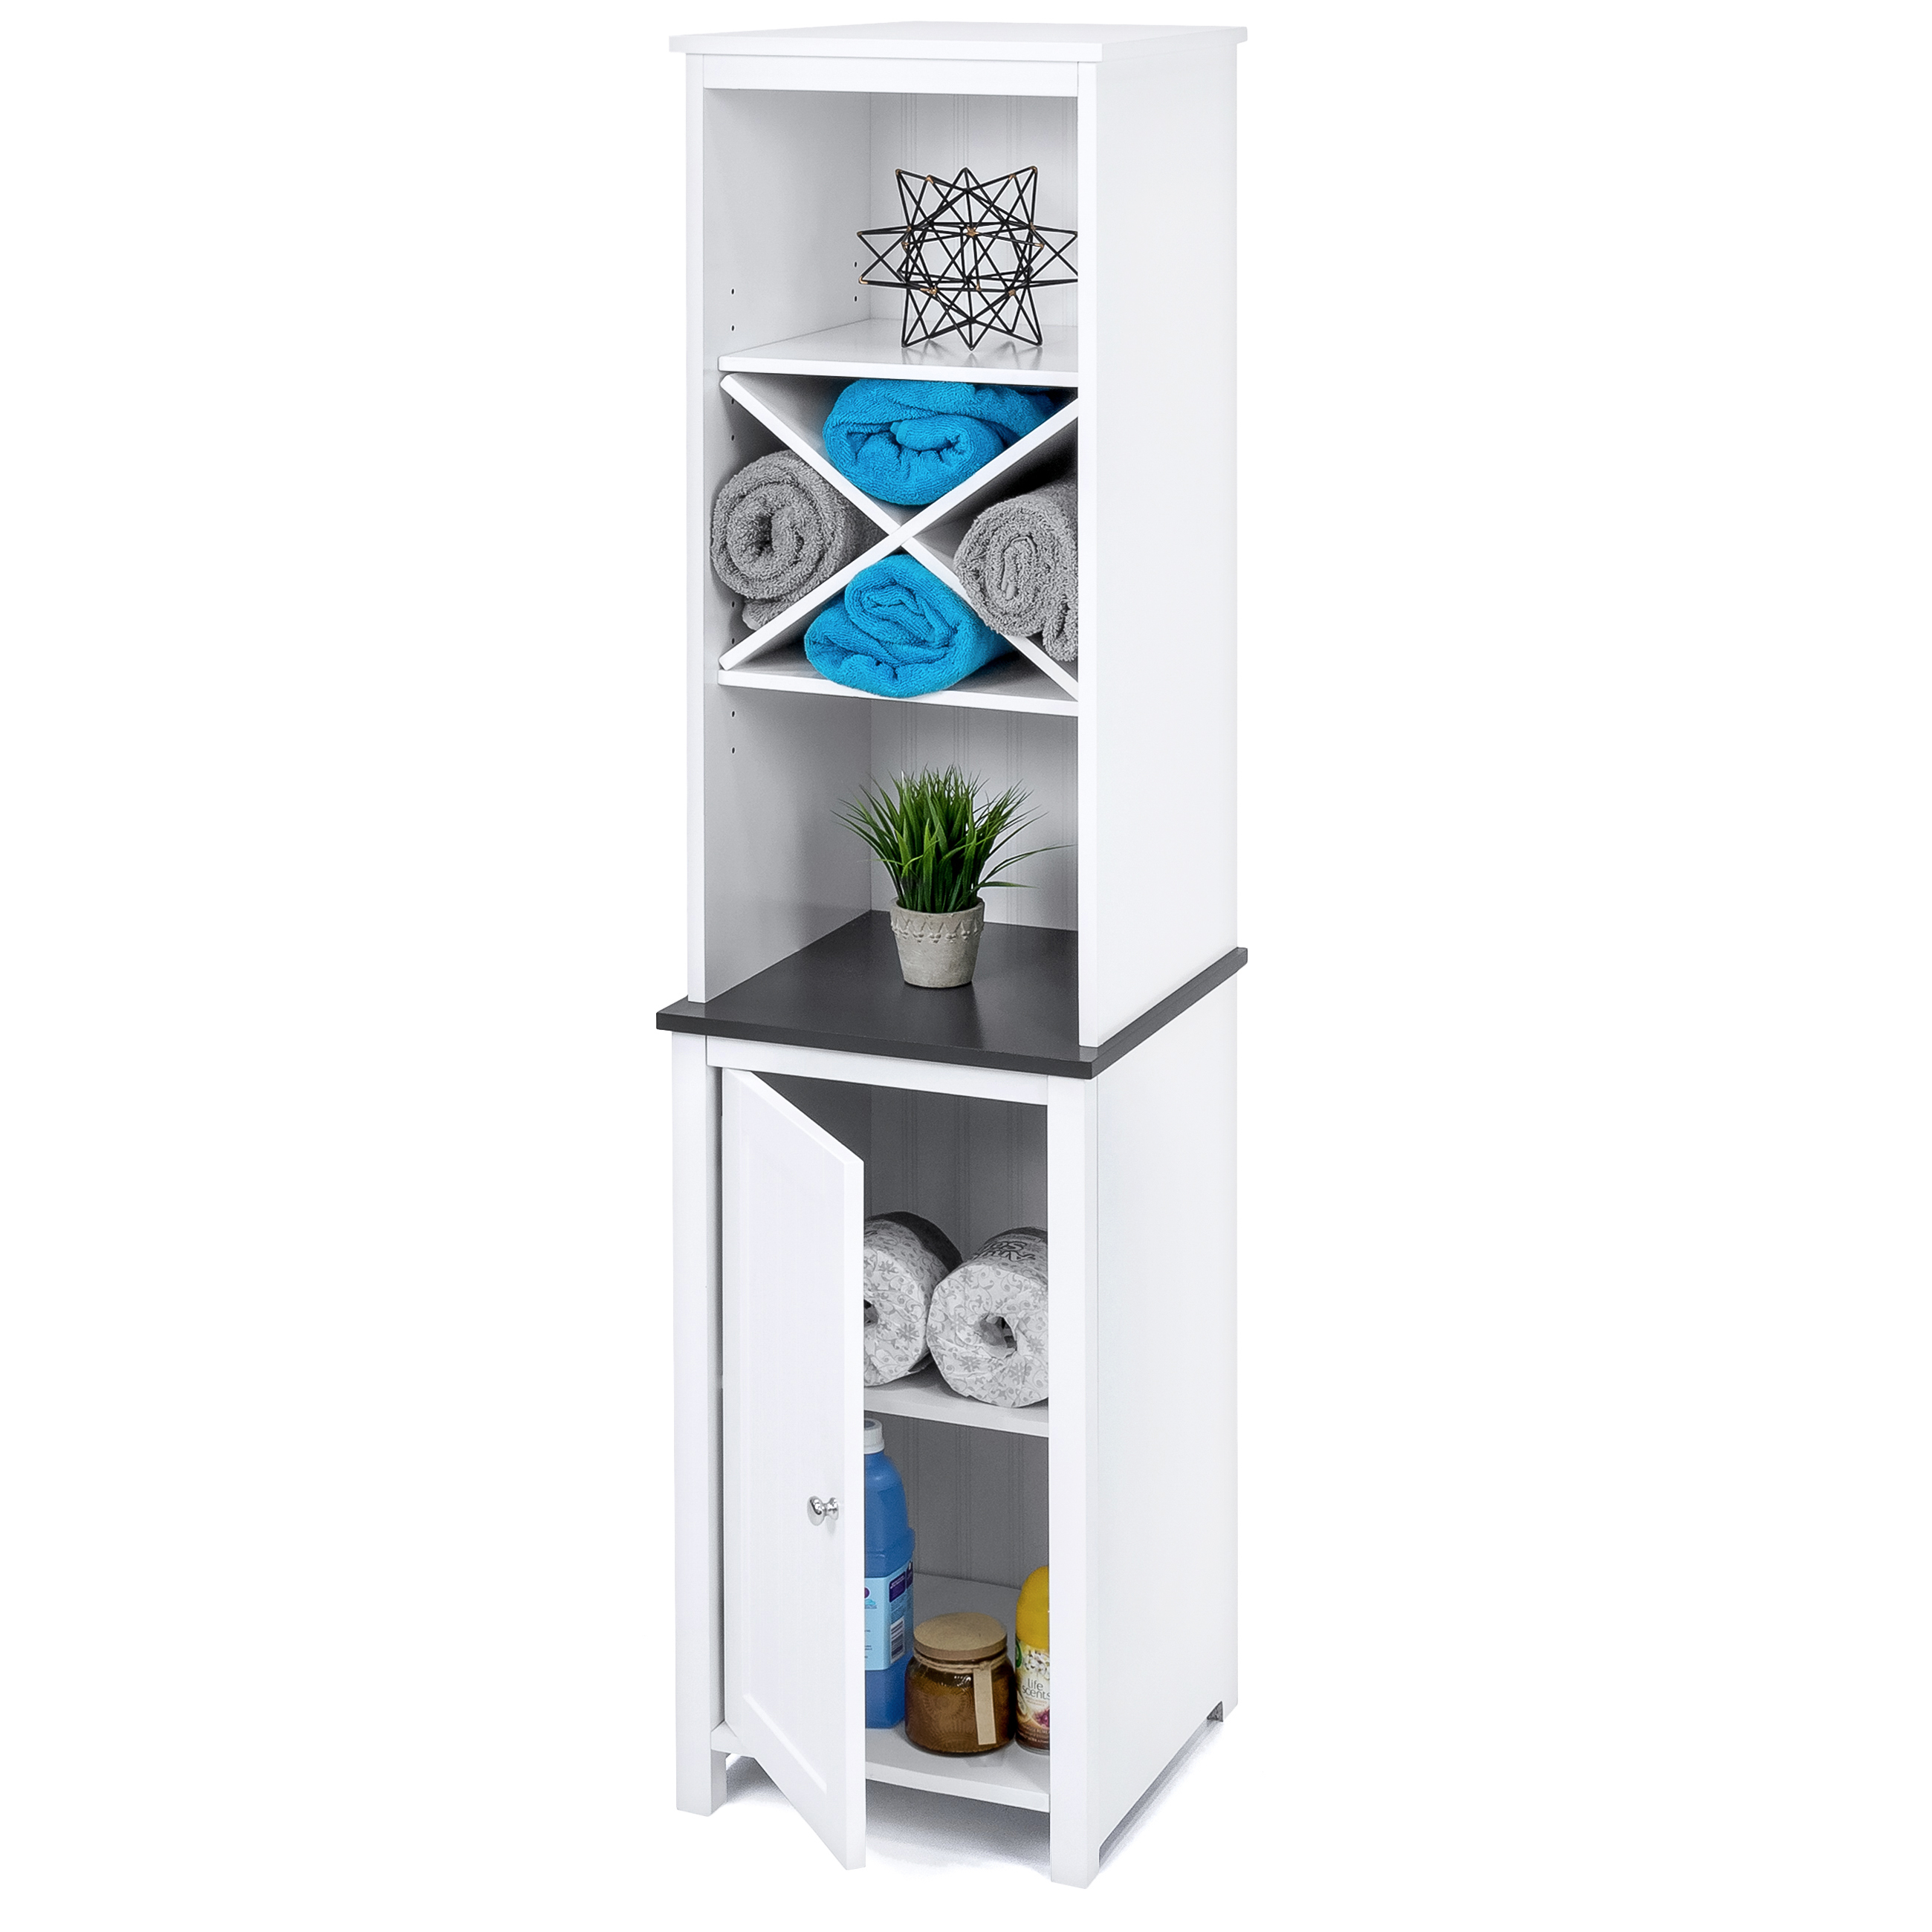 Best Choice Products Bathroom Floor Tower Storage Cabinet (White)